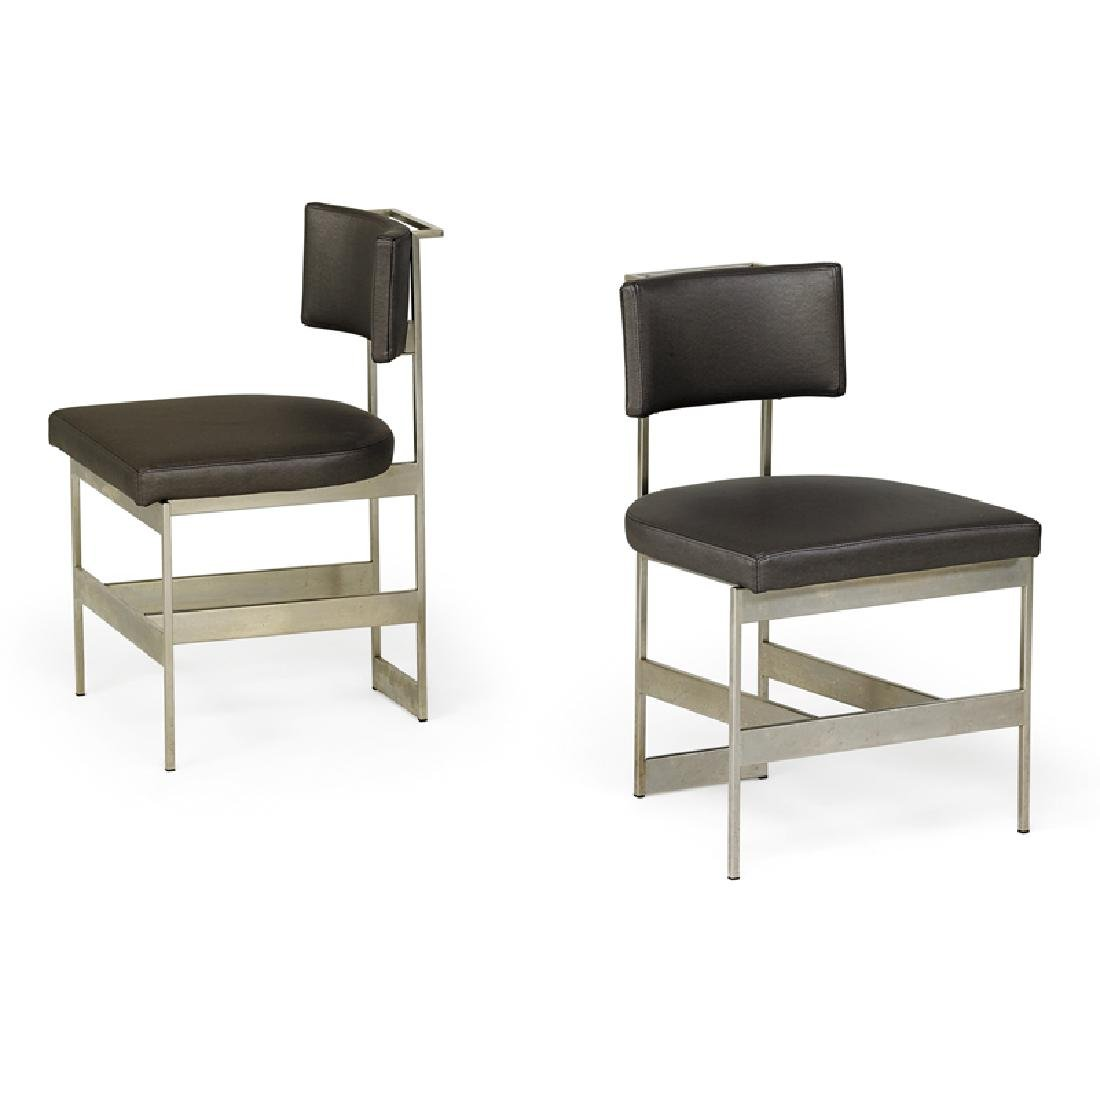 POWELL & BONNELL Two Alto side chairs